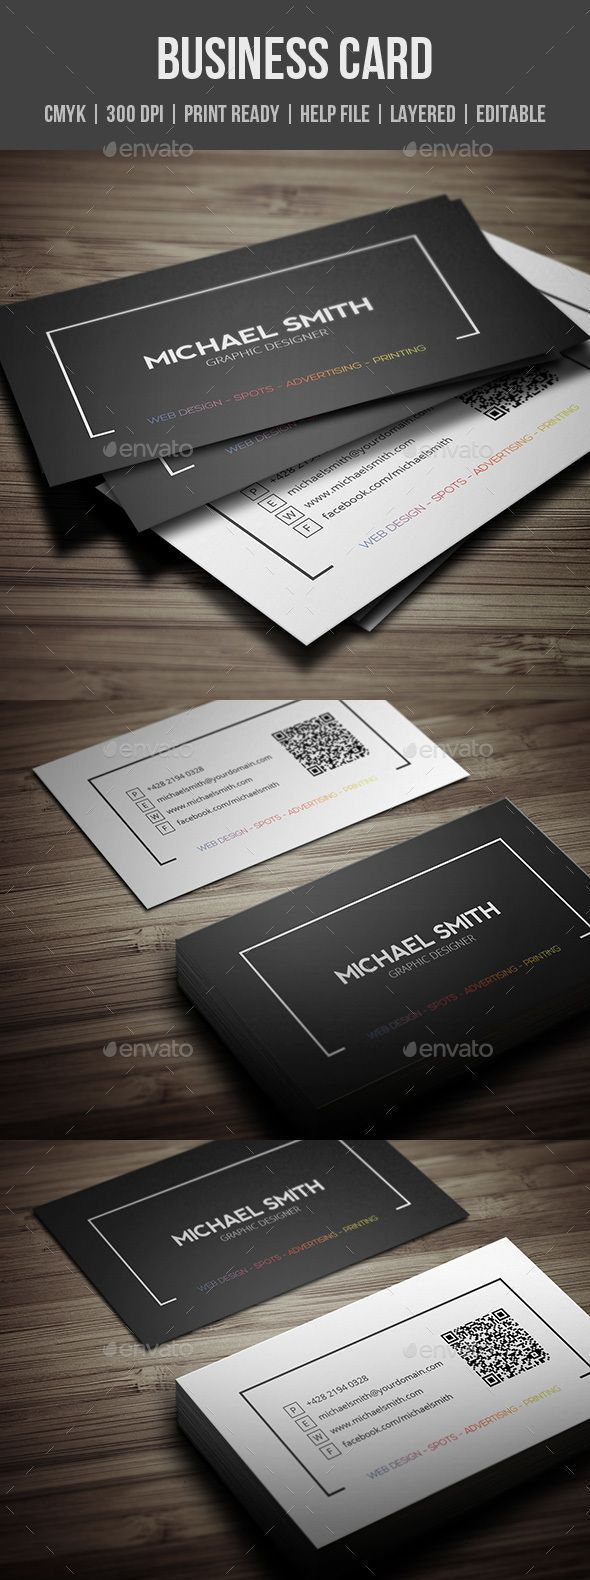 Best 25+ Luxury business cards ideas on Pinterest | Luxury graphic ...